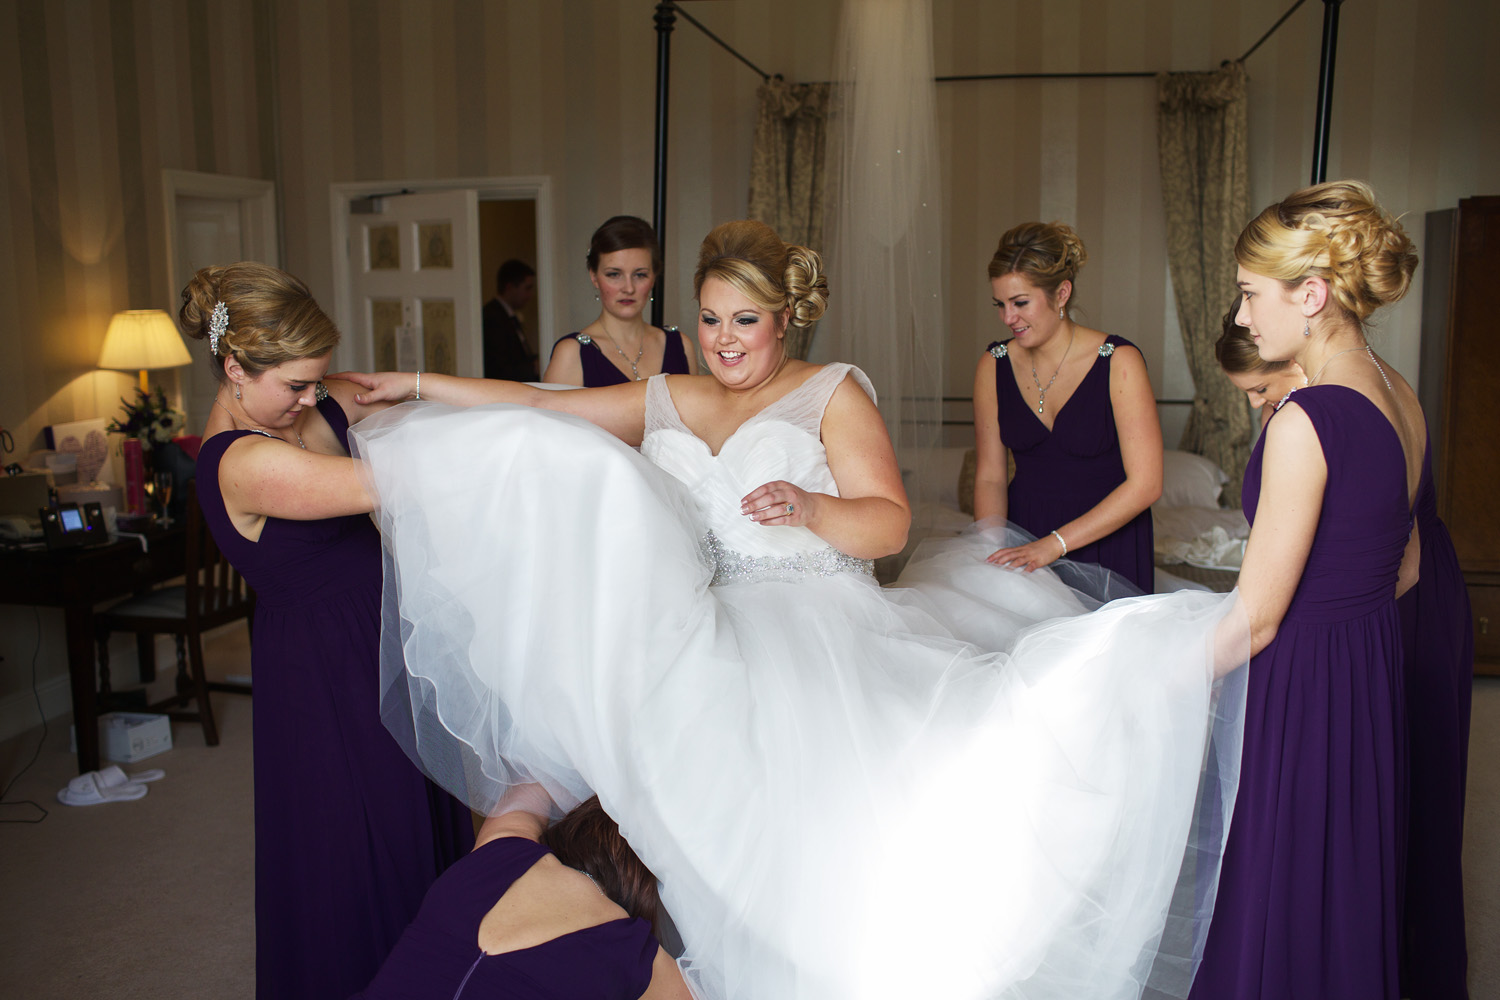 Taplow_House_Hotel_Wedding_Photographer_Maidenhead_031.jpg